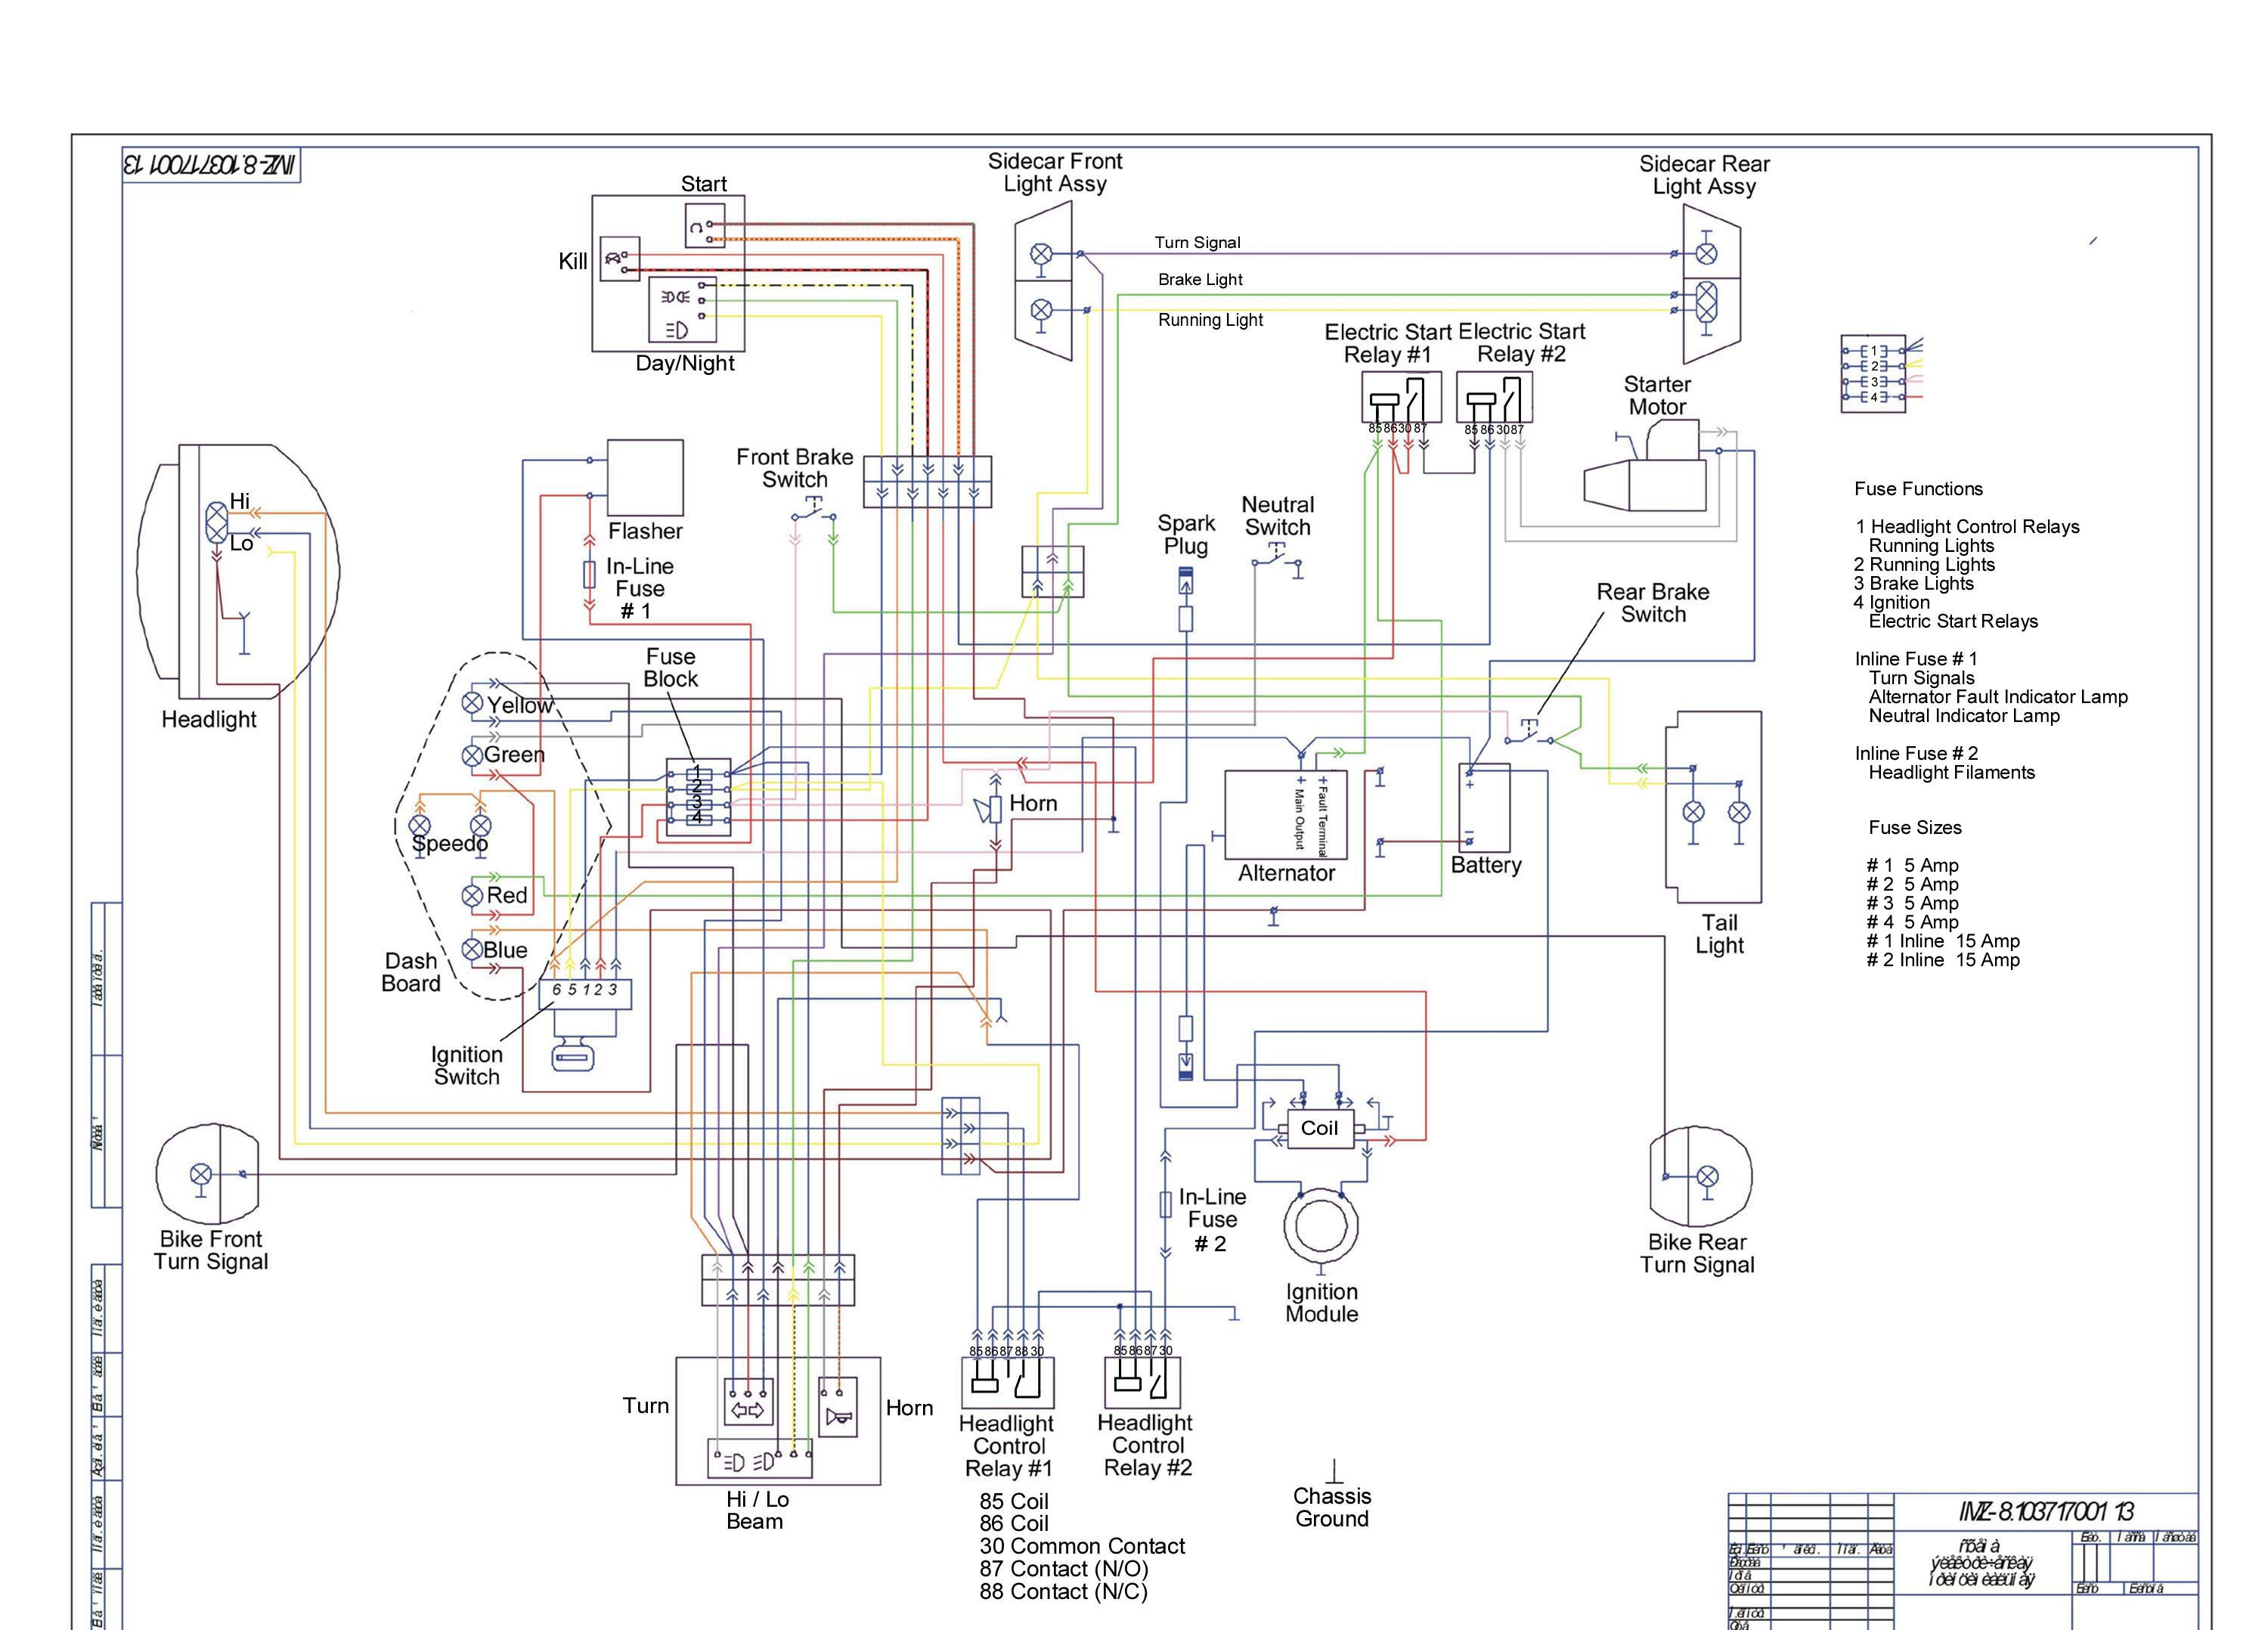 750 Wiring Schematic 2002 750cc wiring schematic schematic and wiring diagrams at bakdesigns.co